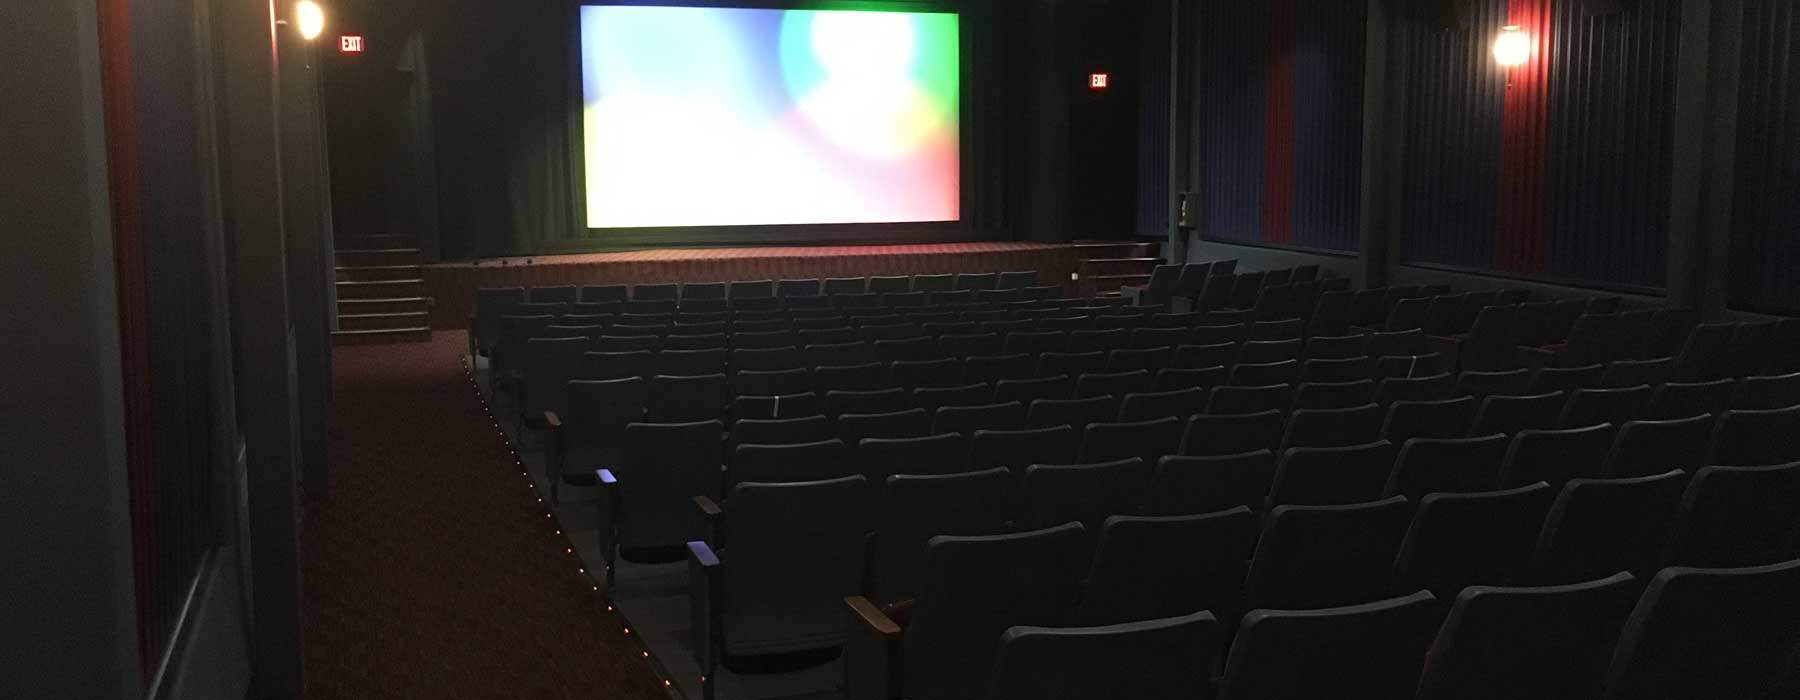 About | New Beverly Cinema